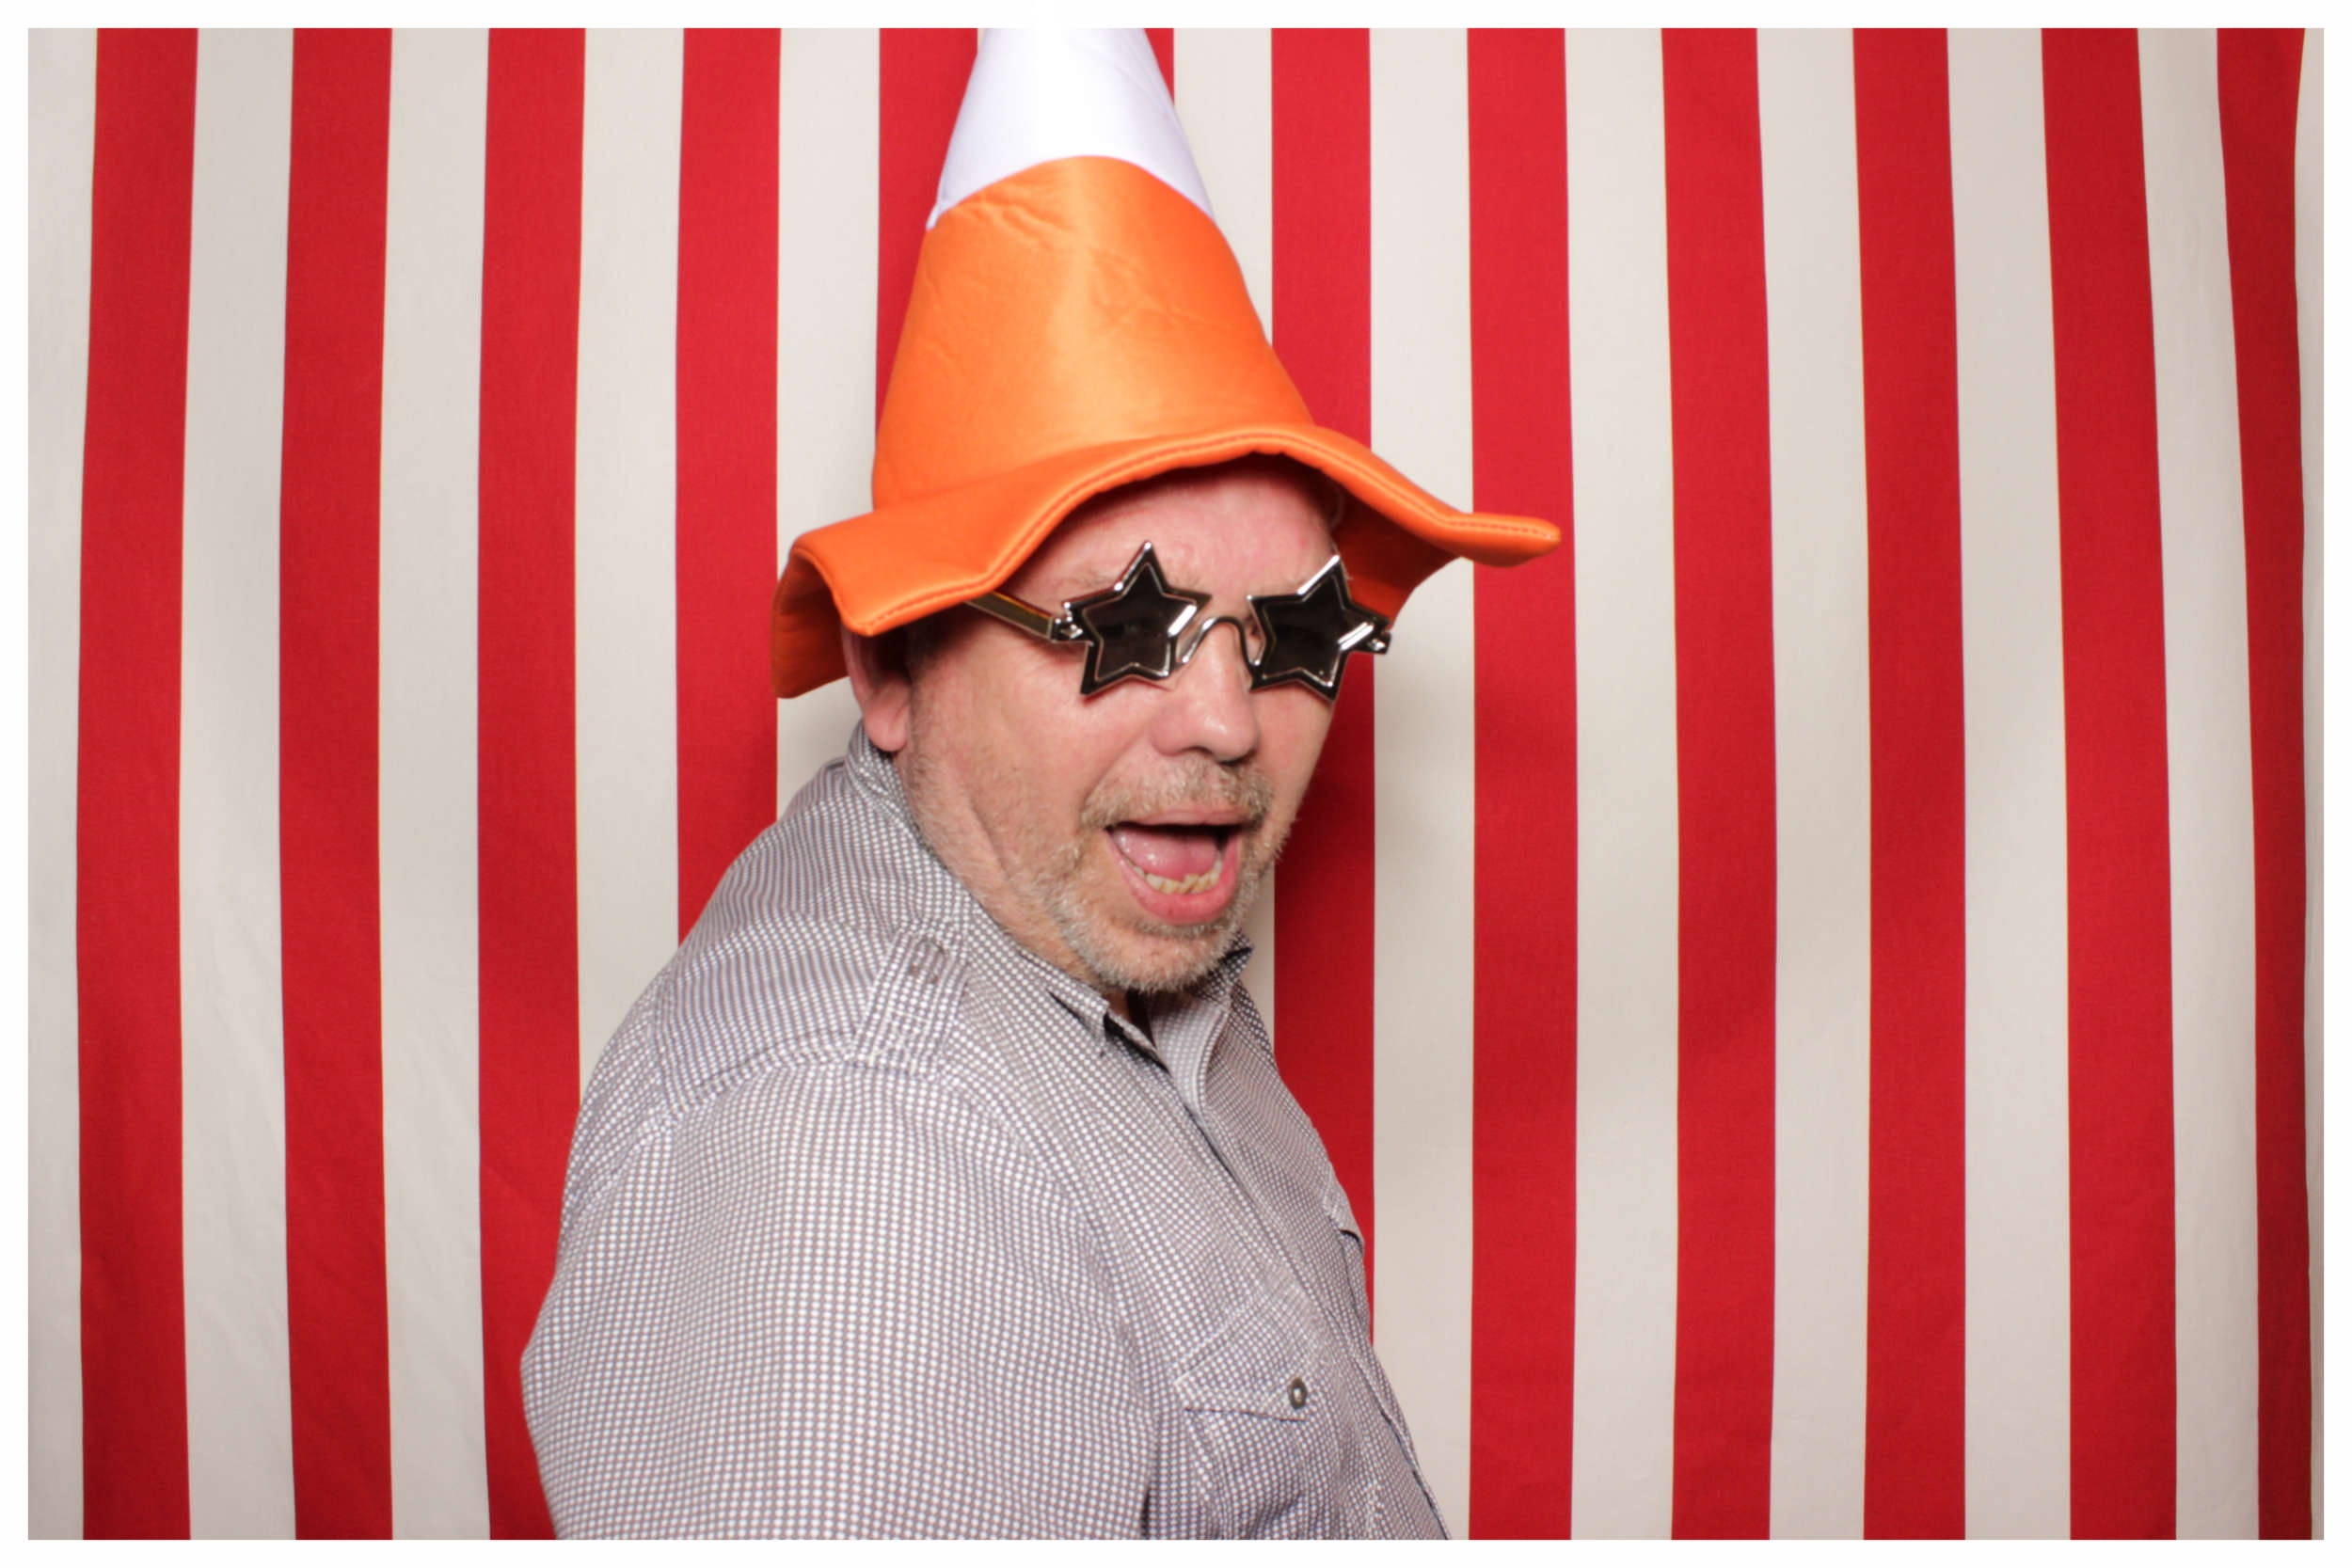 SnapStation - Charlotte and Ben wedding photo booth 3.jpg